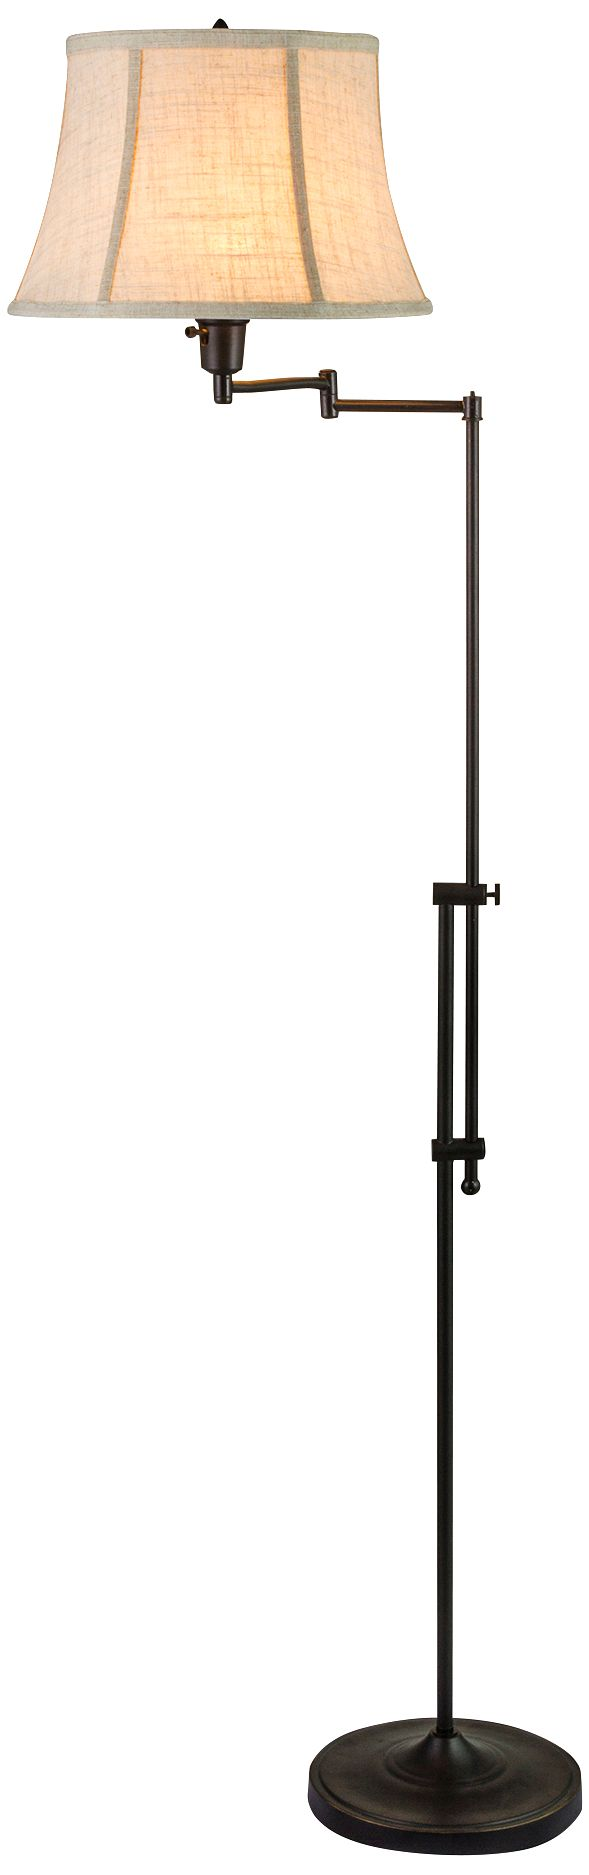 Merveilleux Chaverra Bronze Adjustable Swing Arm Floor Lamp